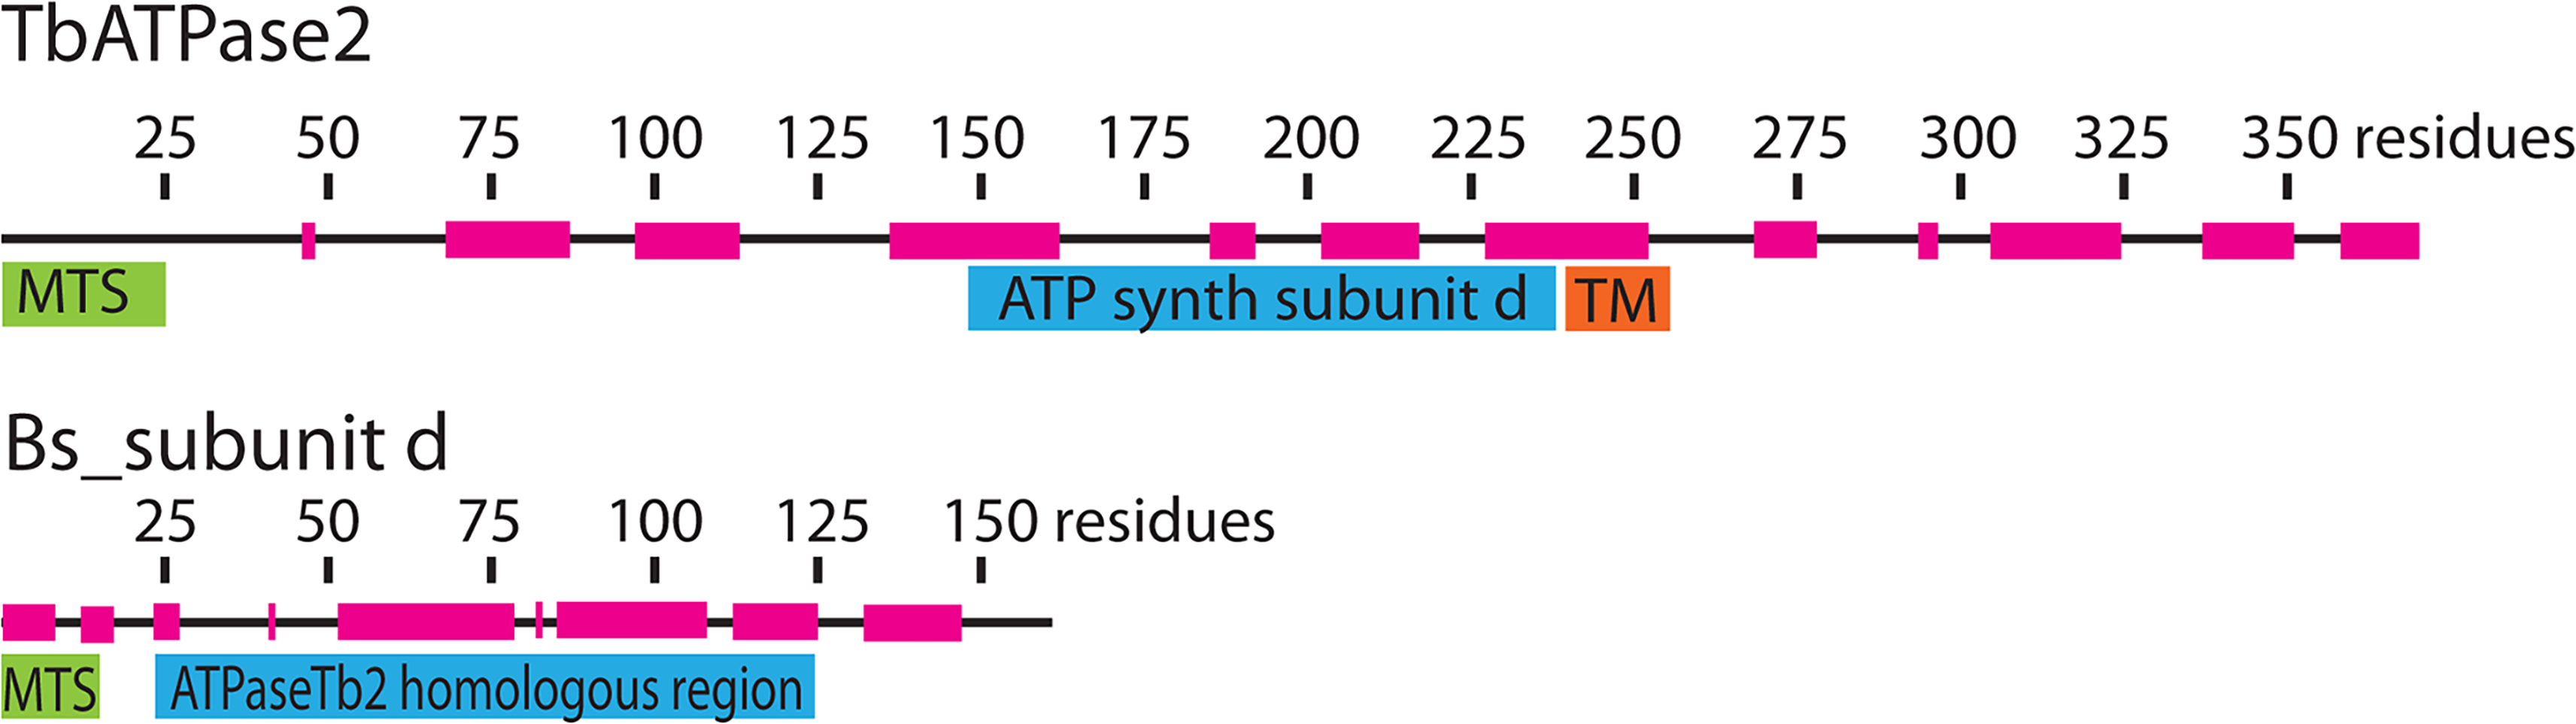 Bioinformatics reveal that ATPaseTb2 possesses a region of low homology to ATPase subunit d.